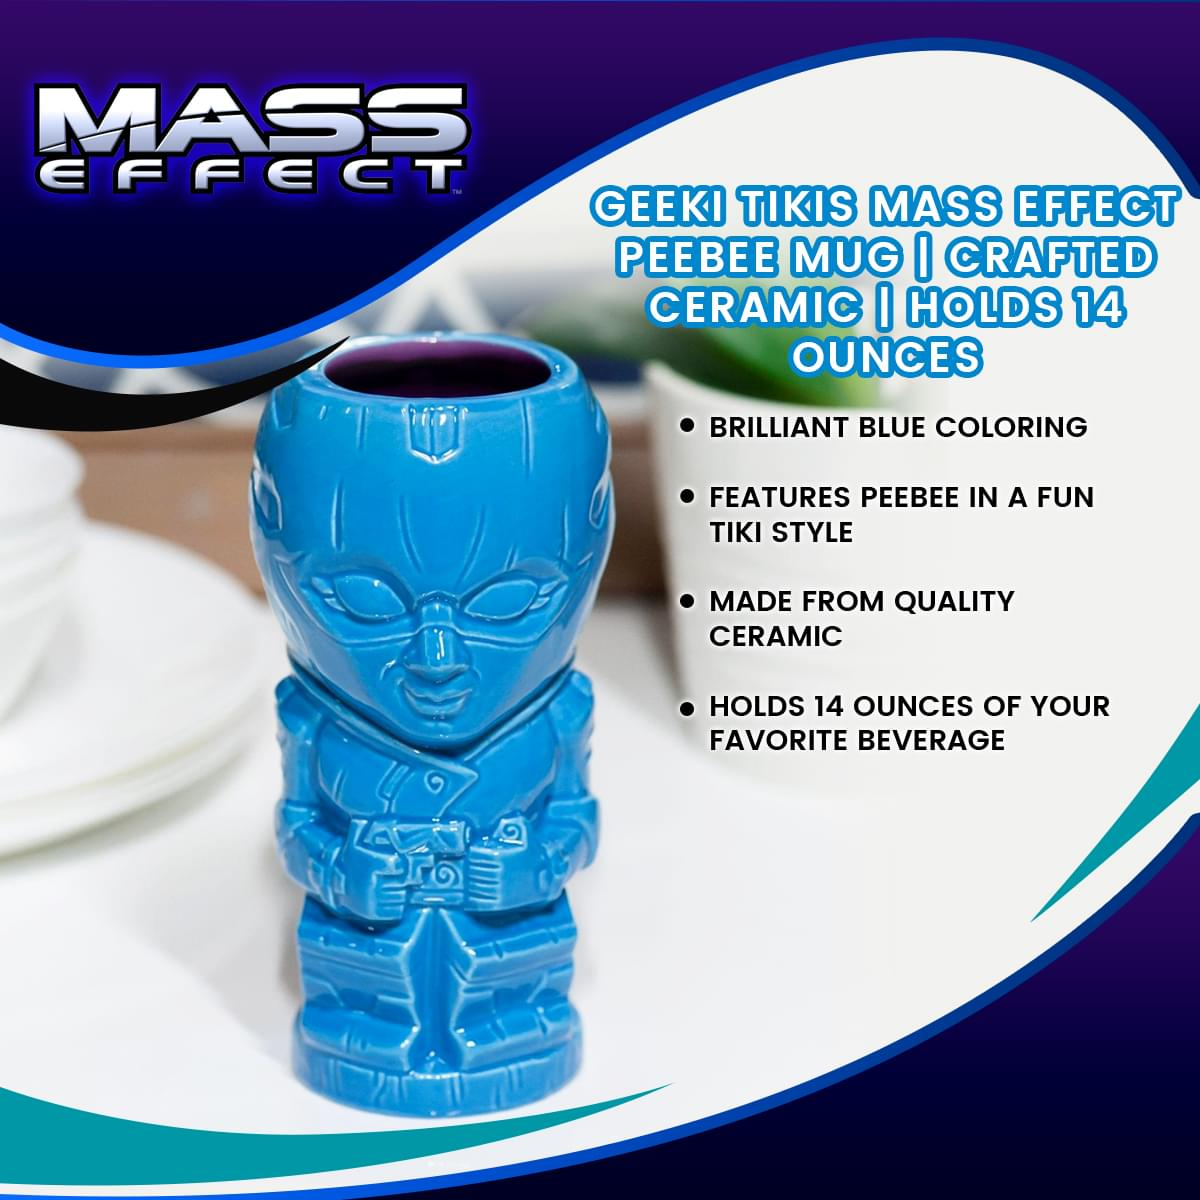 Geeki Tikis Mass Effect Peebee Mug | Crafted Ceramic | Holds 14 Ounces